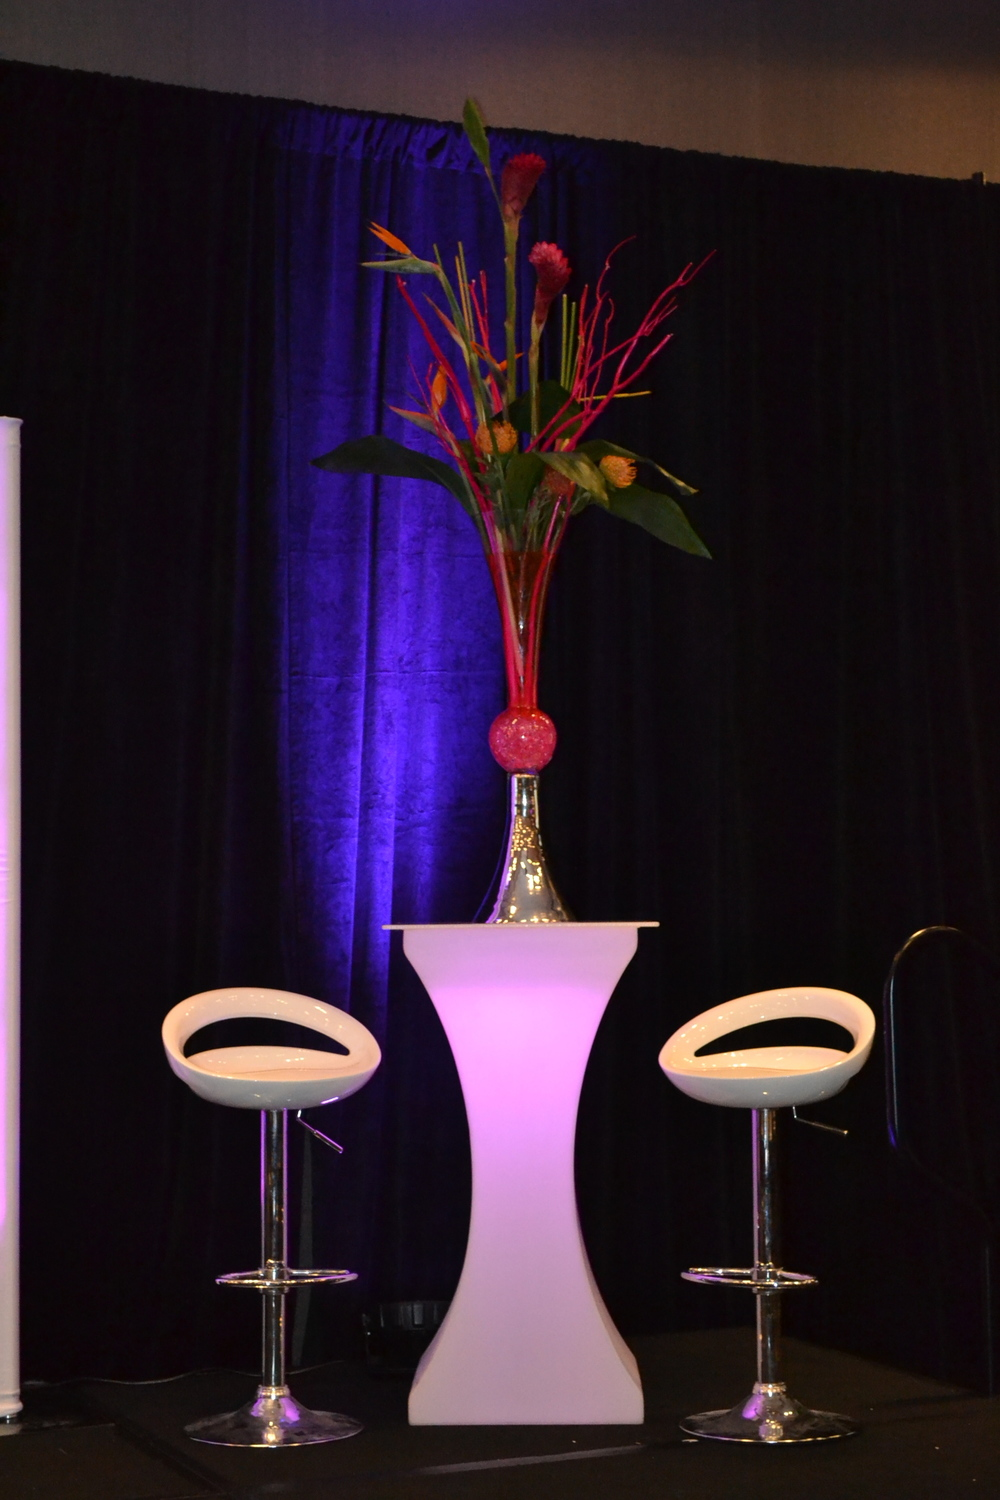 Lisa Nicole Cloud's Women's Empowerment Conference, Event furnishings and decor